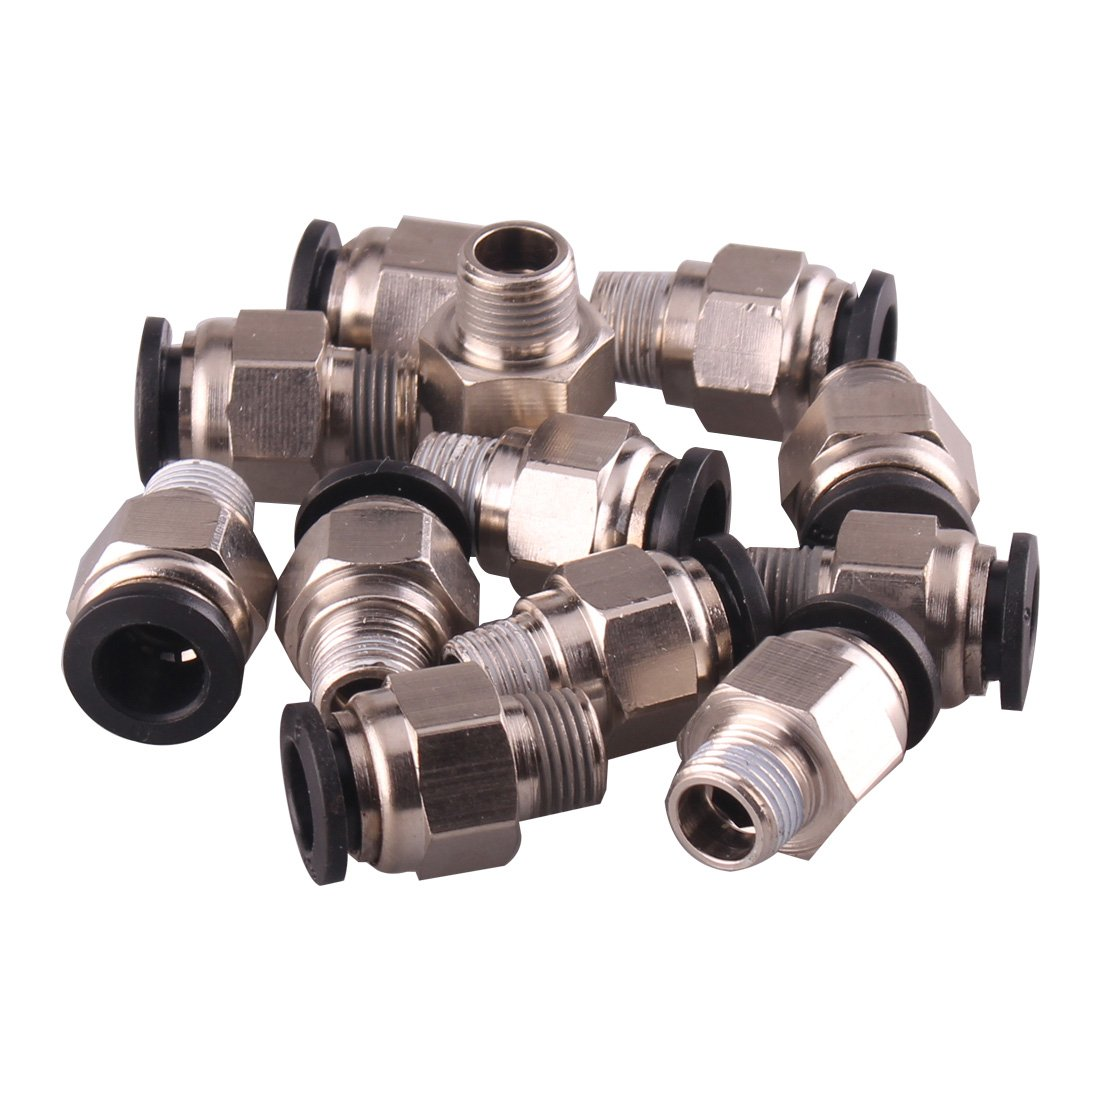 1/4'' PT Male Thread 8mm Push in Joint Pneumatic Connector Quick Fittings 12 Pcs Ted Lele (8mm 1/4)